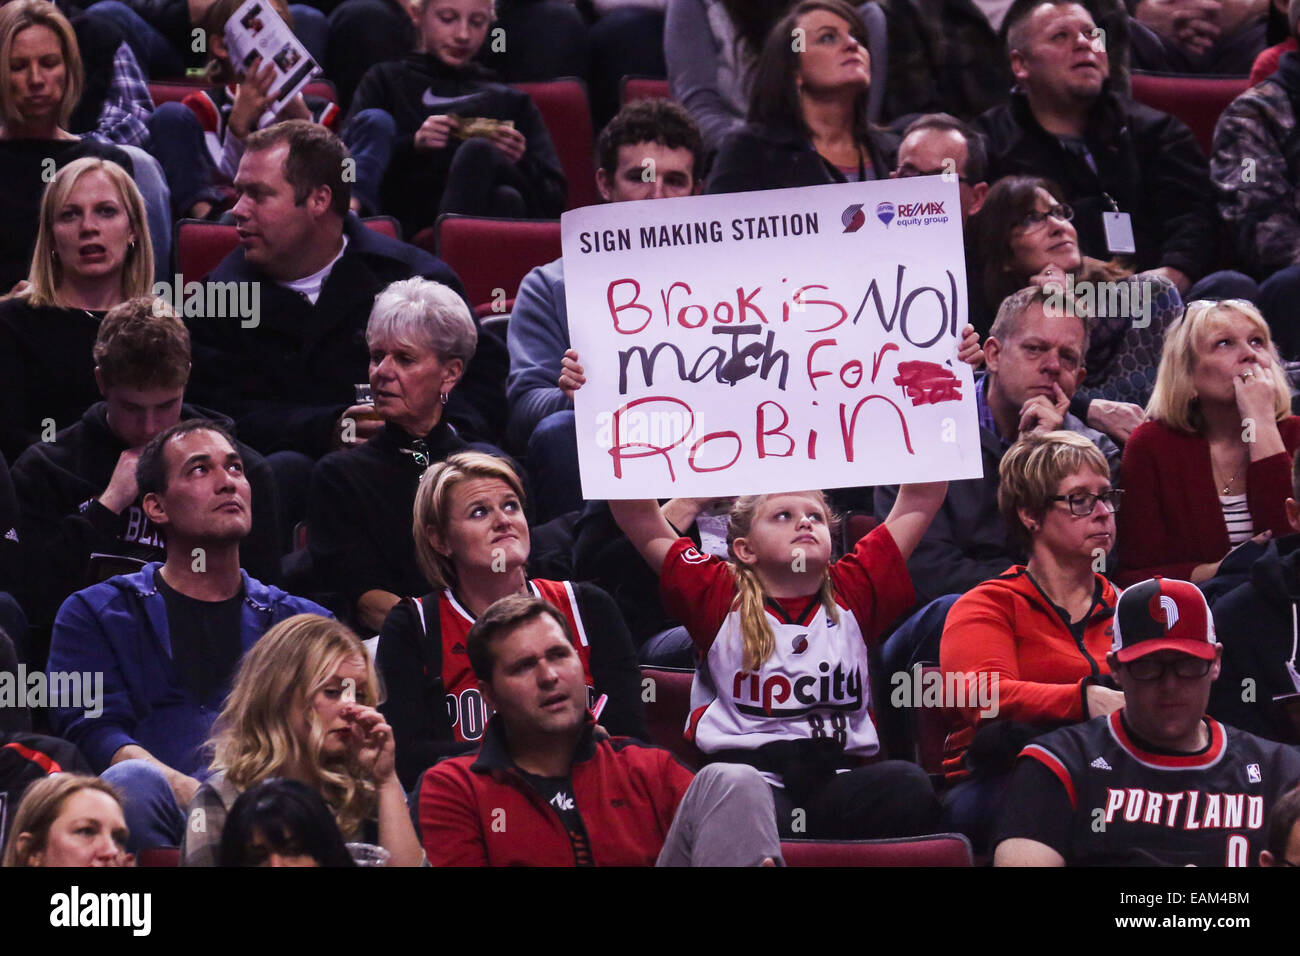 83edfc70239 The Portland Trail Blazers play the Brooklyn Nets at the Moda Center on  November 15,